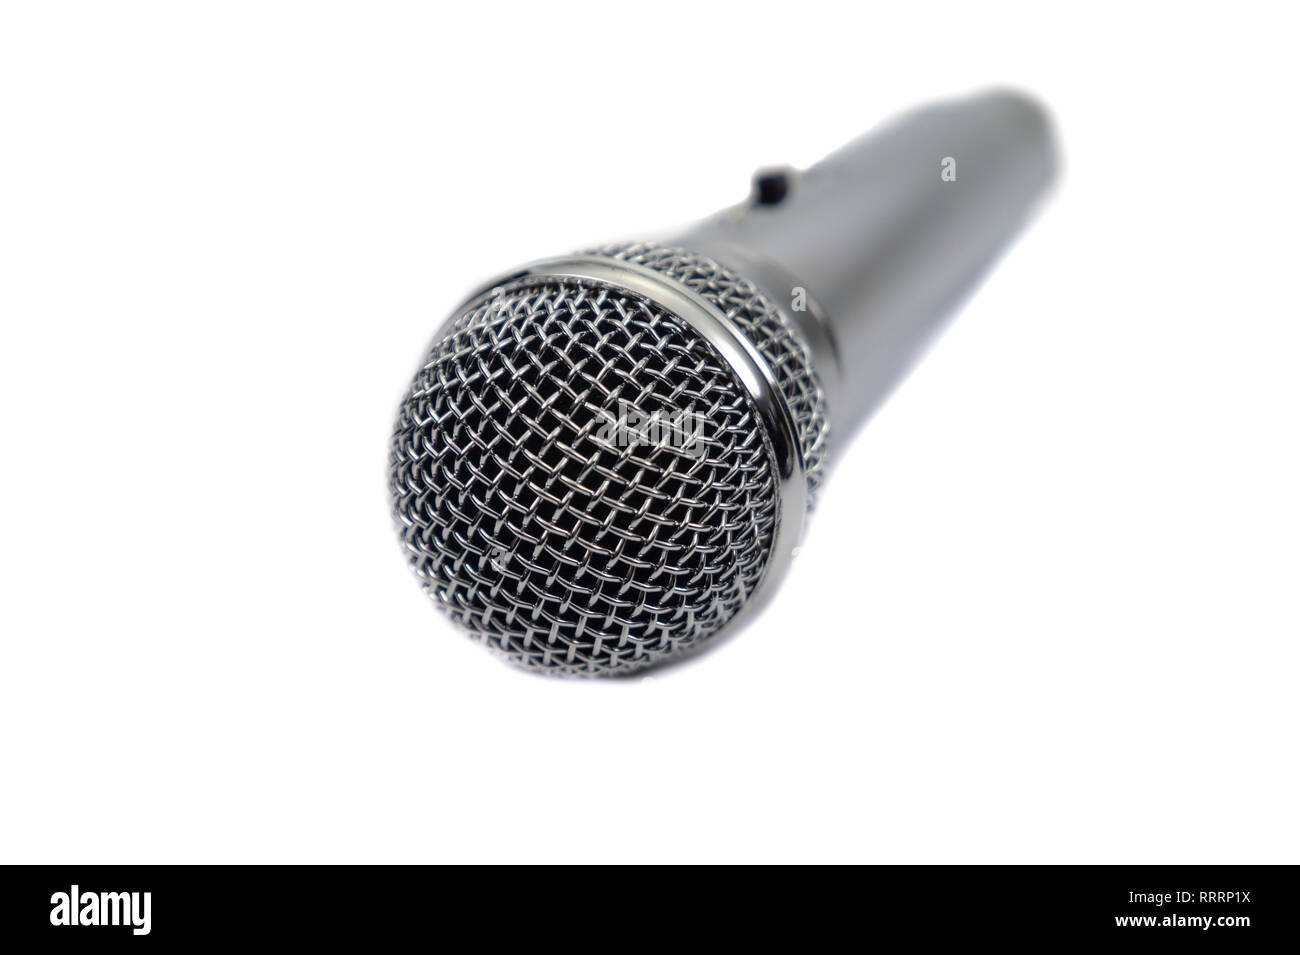 Silver vocal microphone perspective view close up isolated on a white background - Stock Image